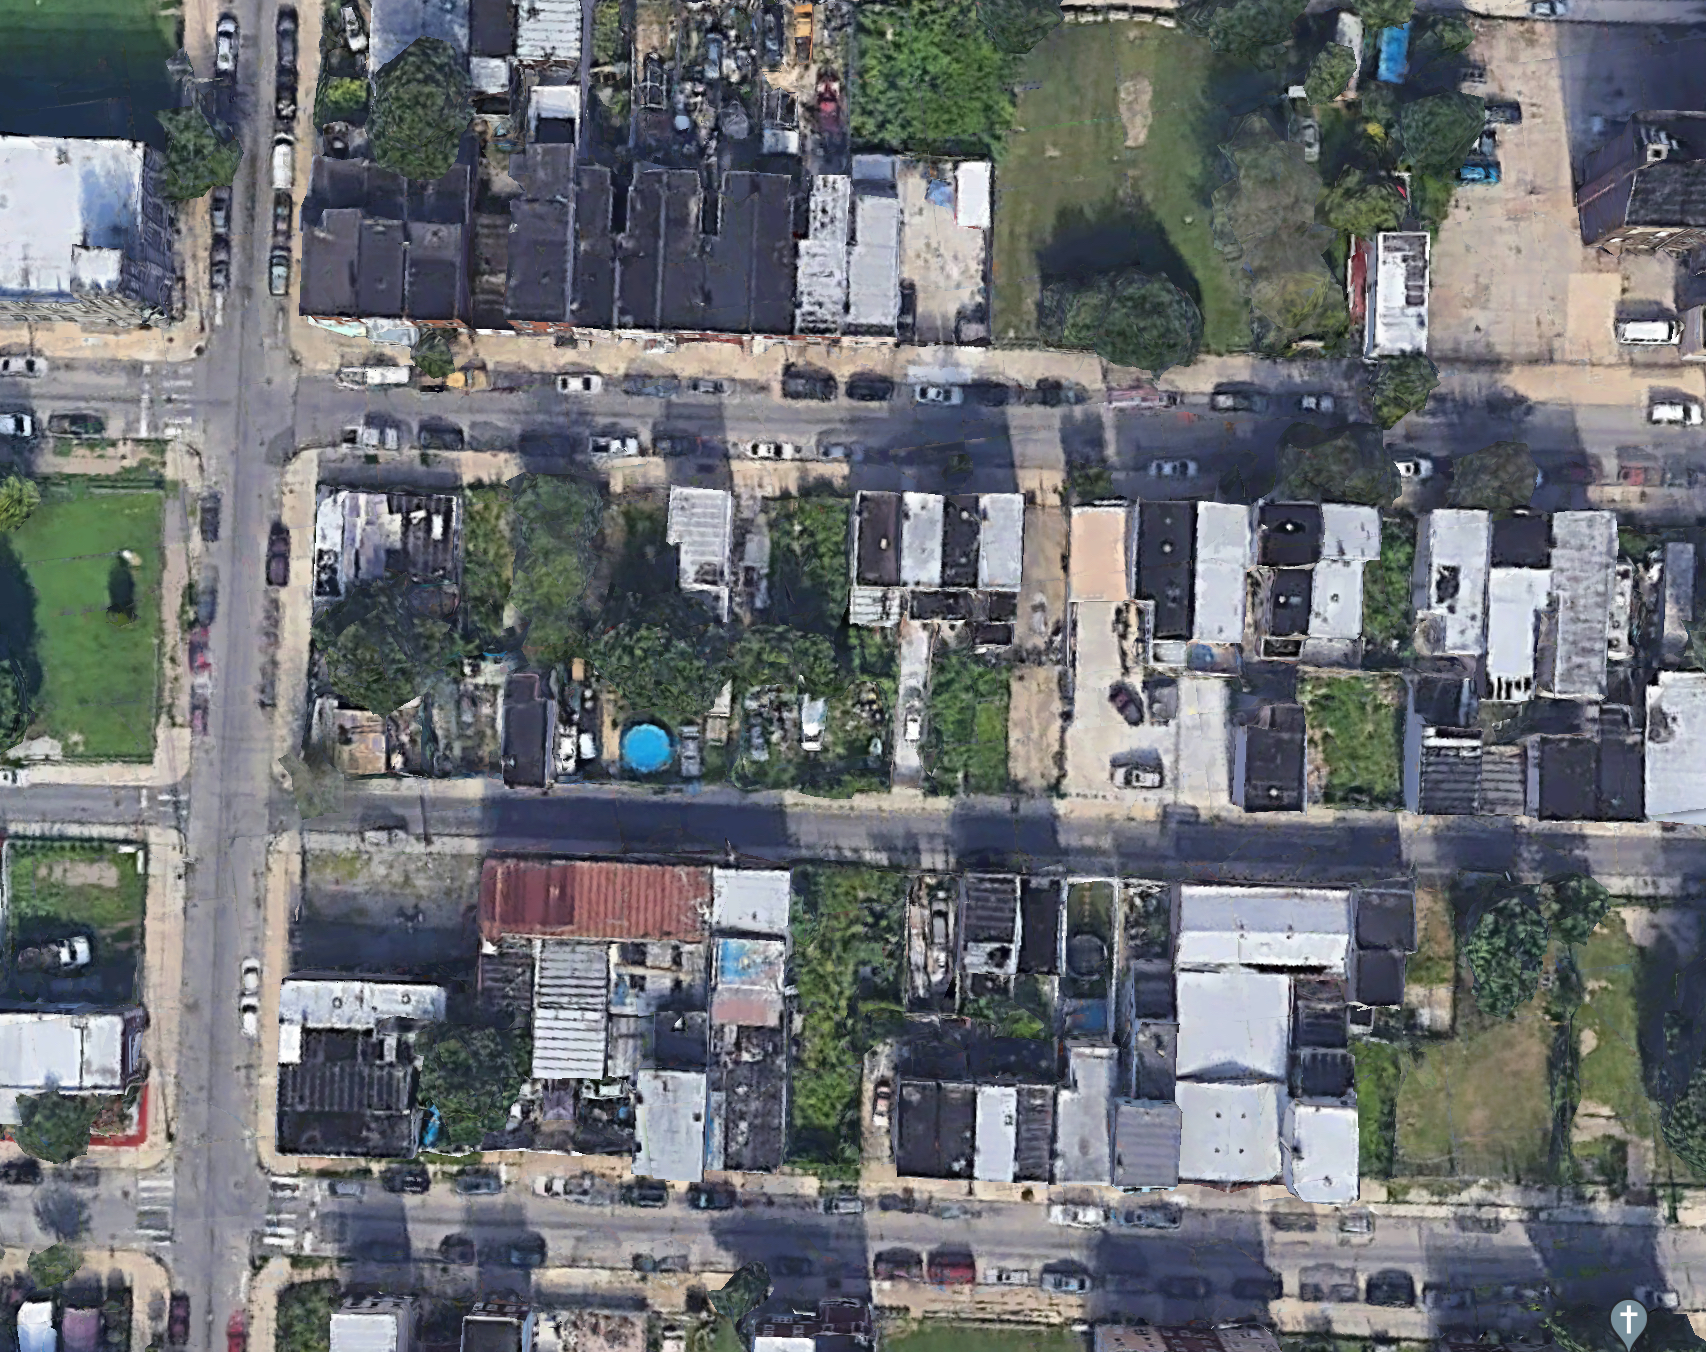 Aerial view of 2400 Block of Mutter Street. Credit: Google.